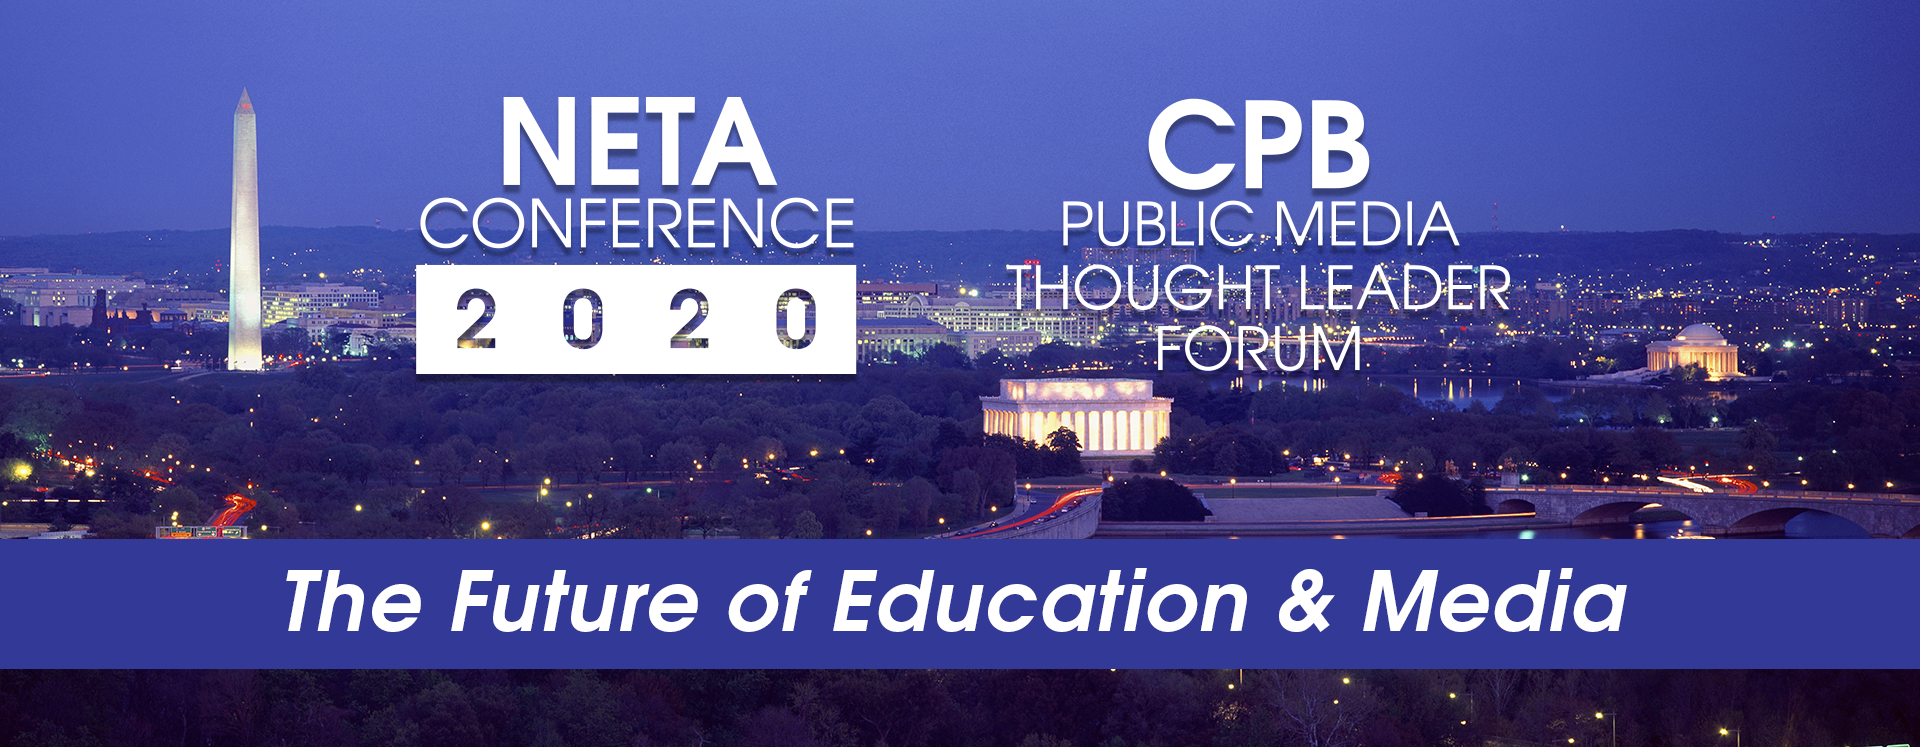 The NETA Conference and CPB Public Media Thought Leader